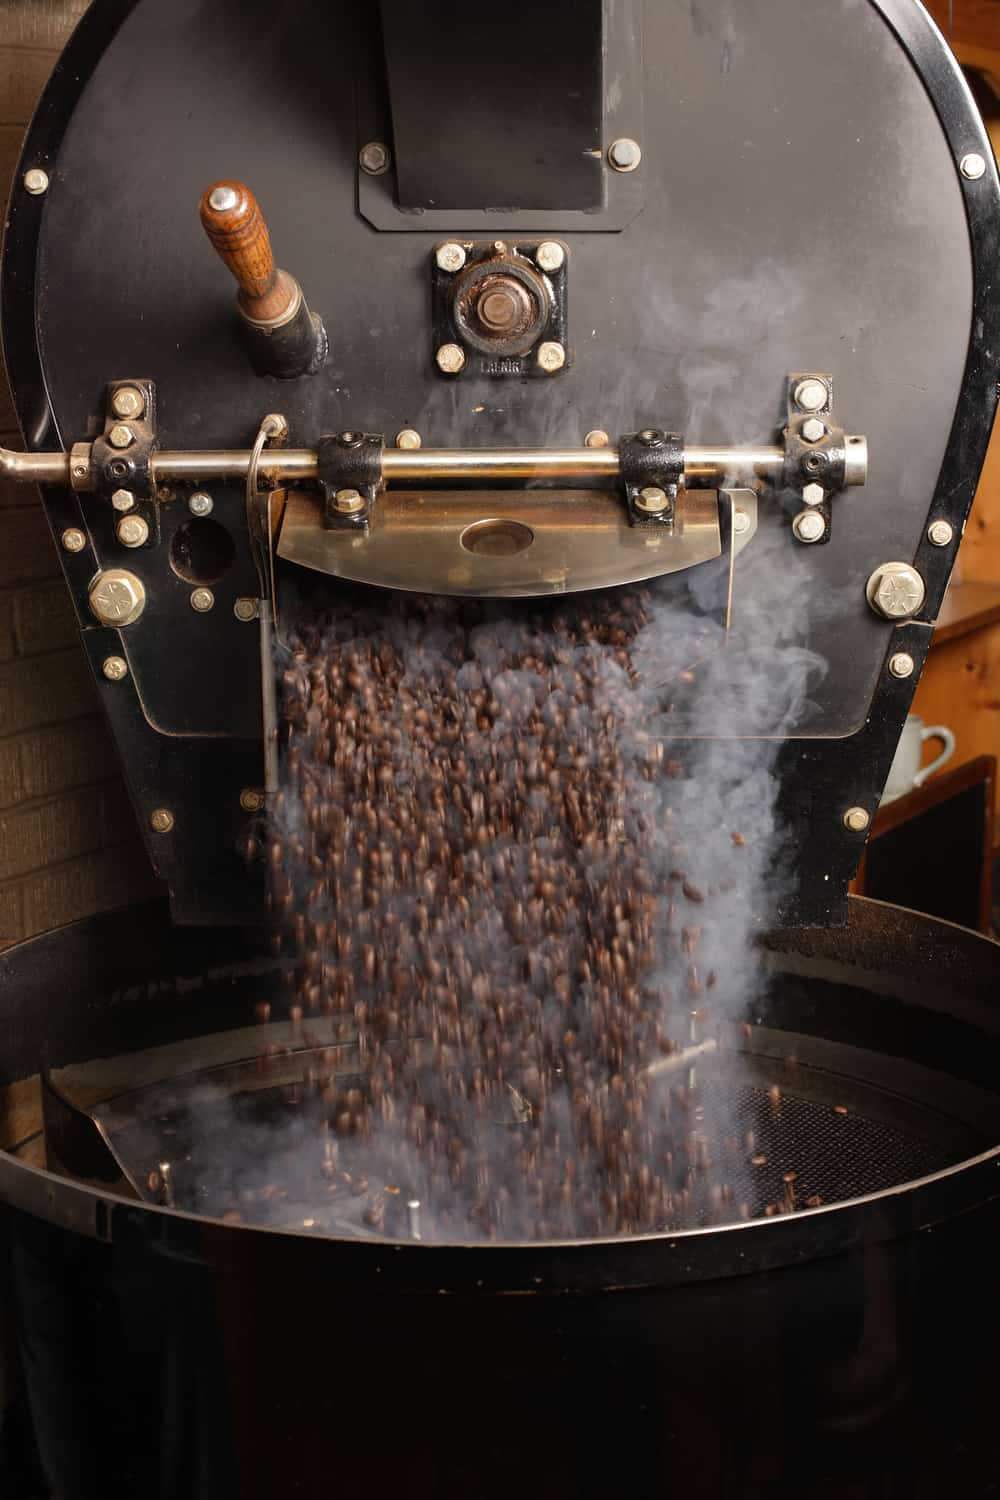 17 Homemade Coffee Roaster Plans You Can DIY Easily